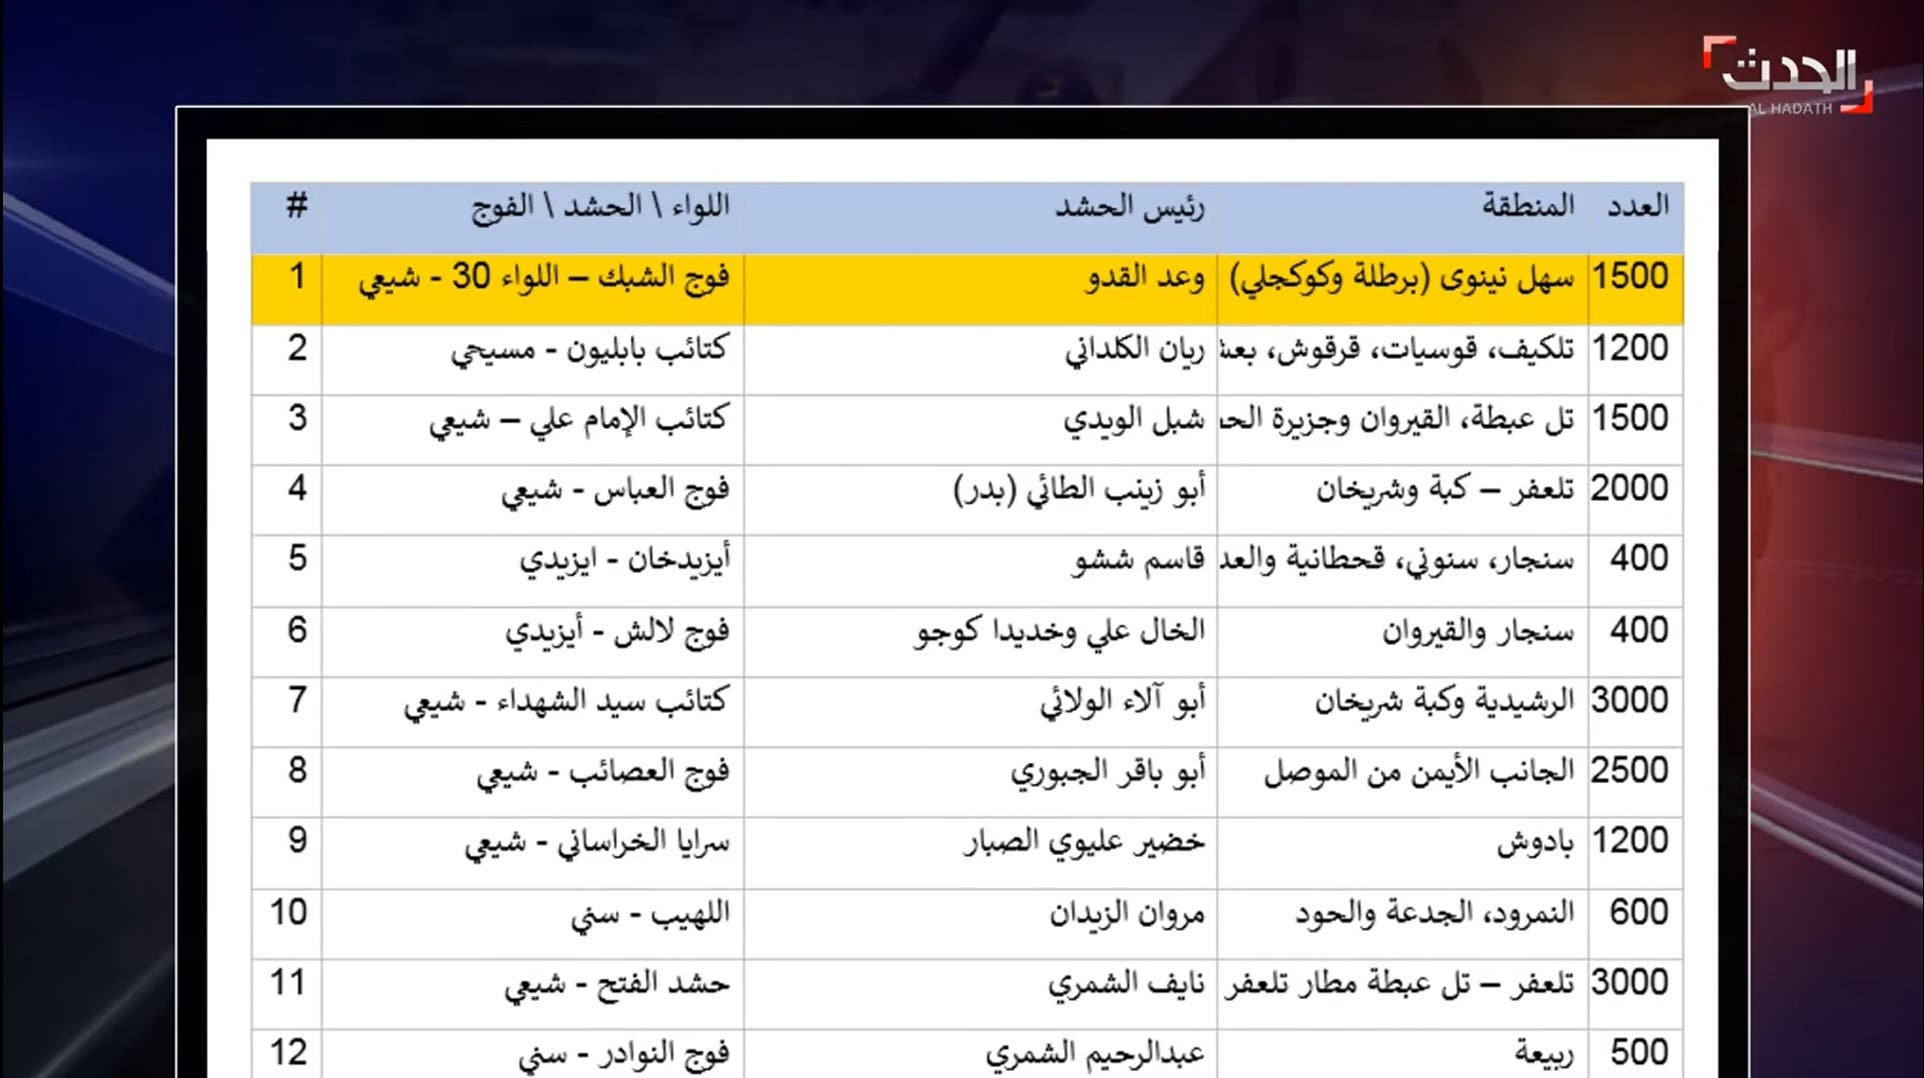 Image shows a list of PMU factions in Nineveh as part of unpublished paper by slain Iraqi activist al-Hashemi on the group's corrupt activities in the province. (Al Hadath)